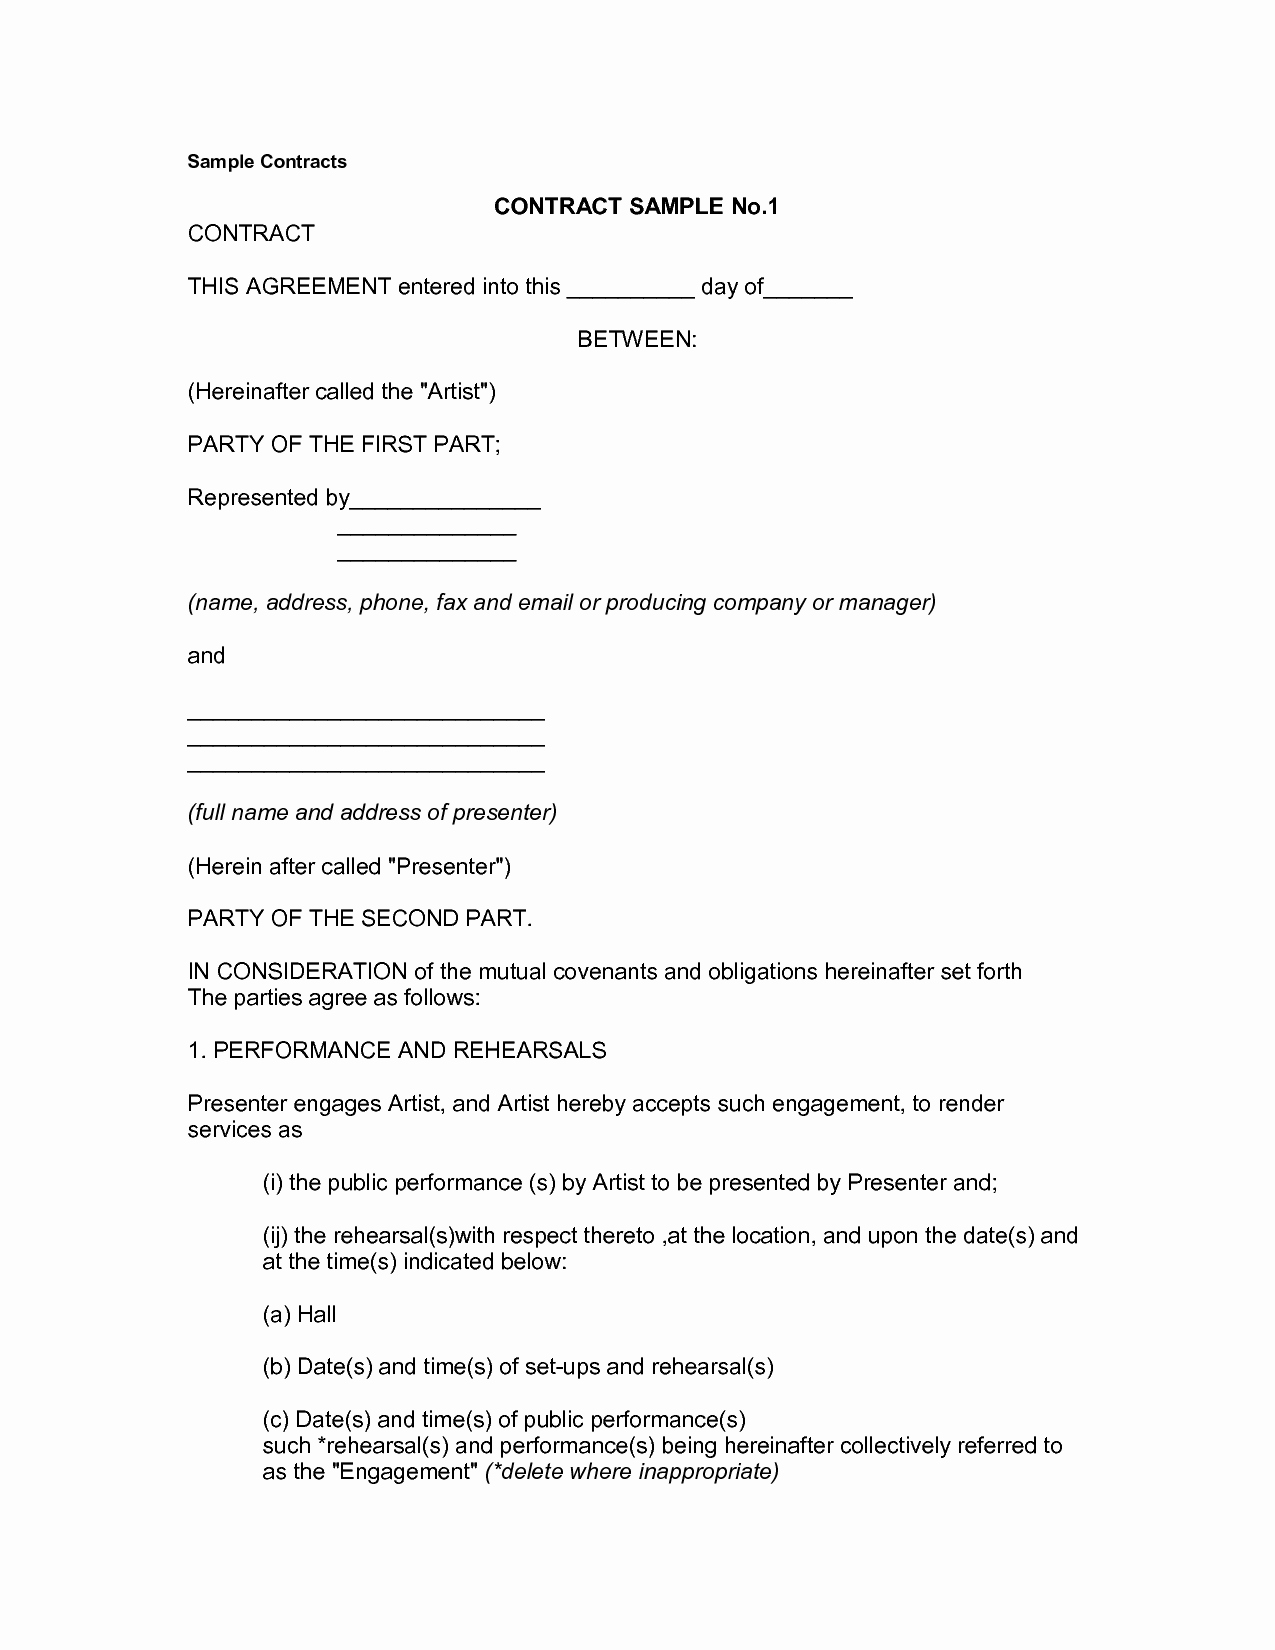 Simple Business Contract Template New Basic Contract for Services Mughals